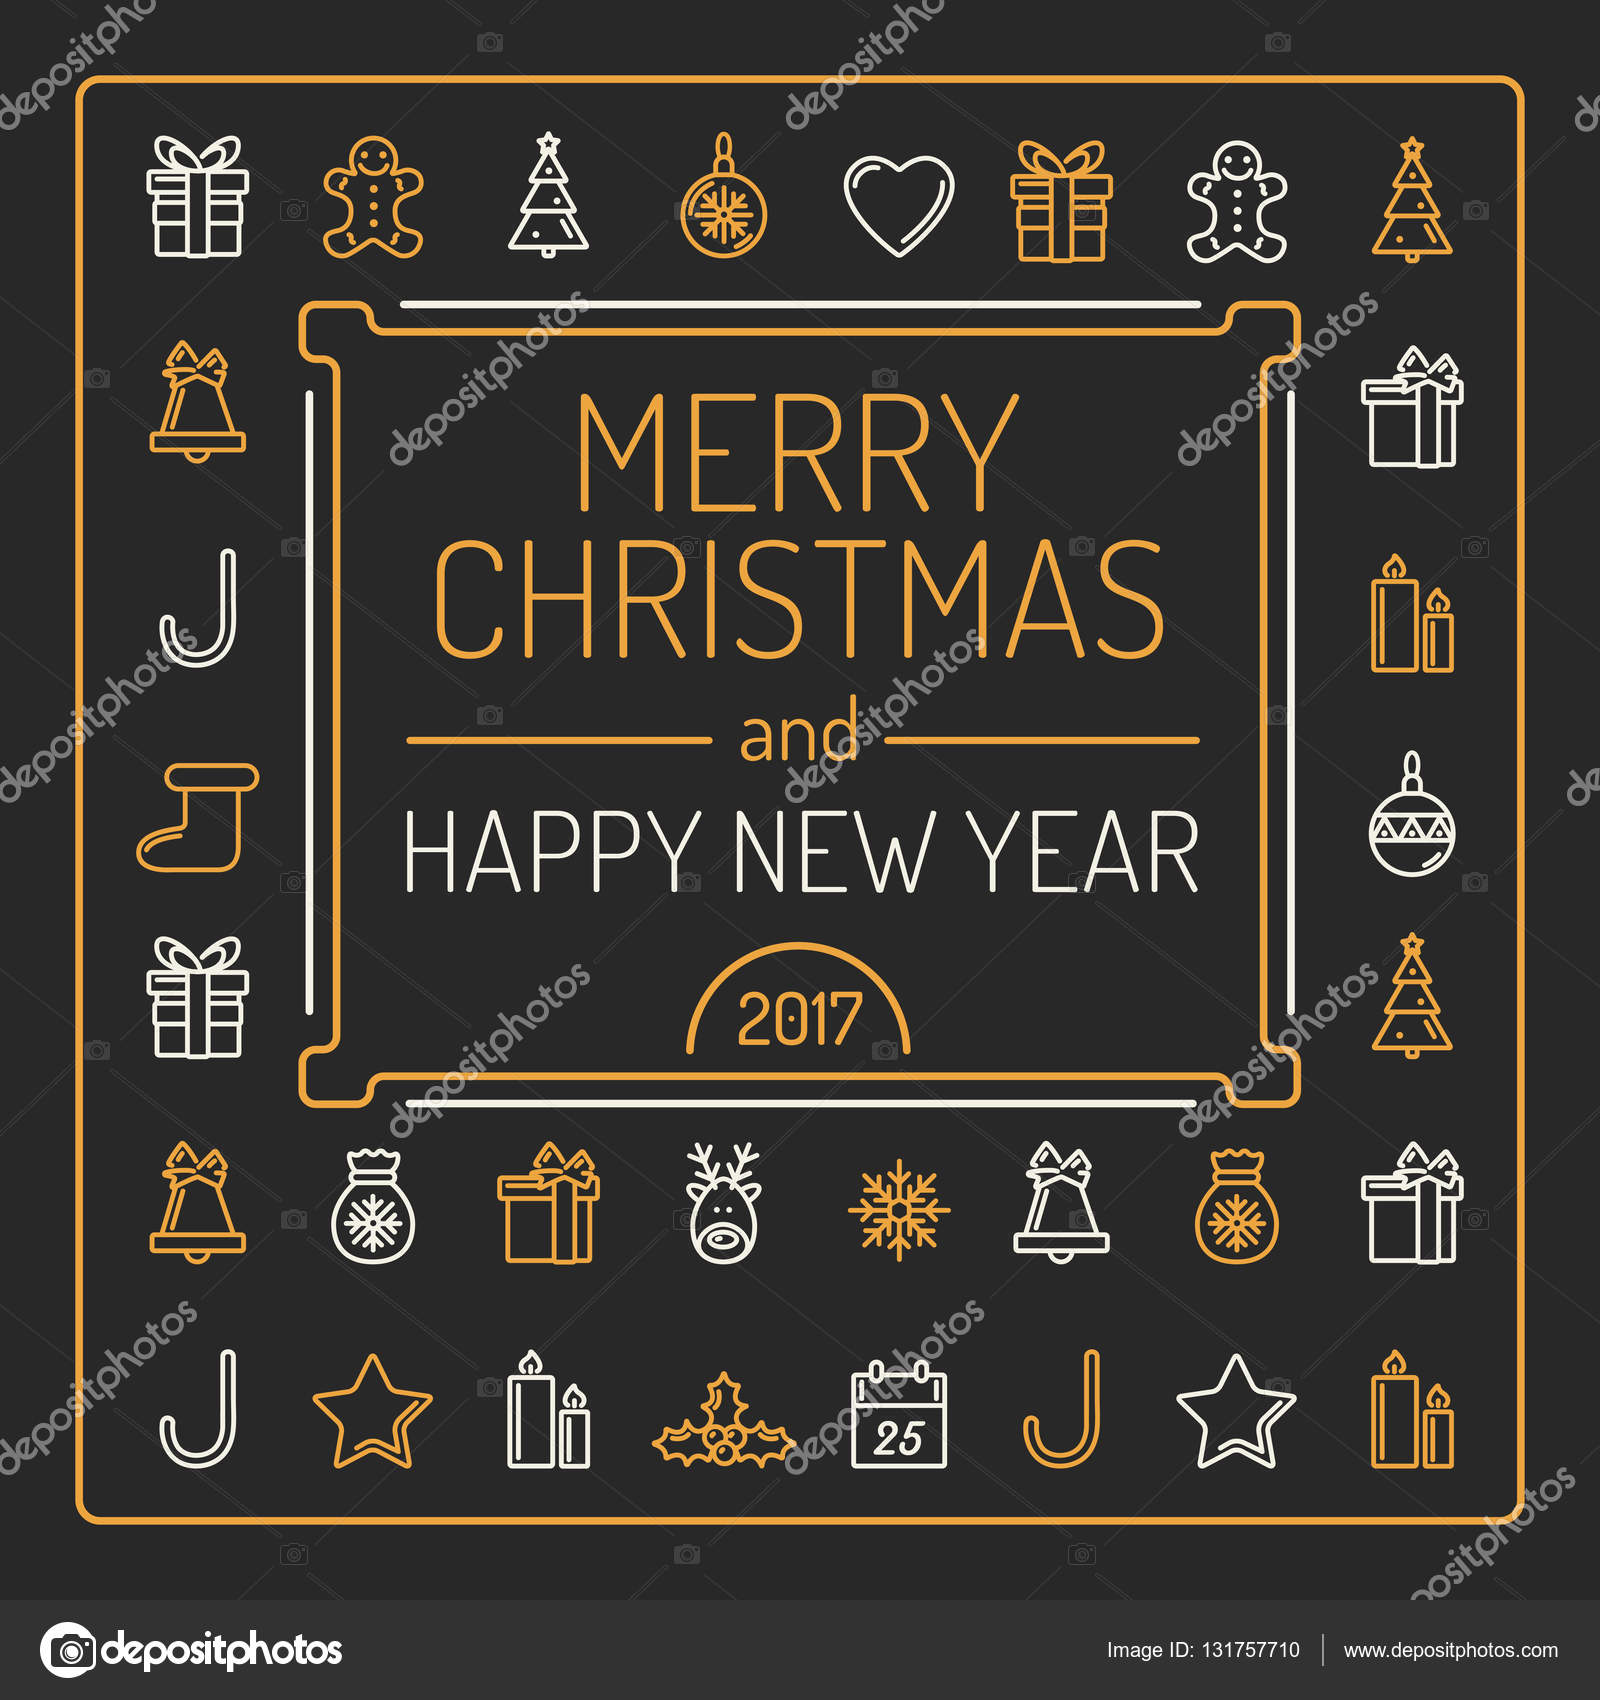 merry christmas and happy new year card golden and silver colour outlines on black background luxury trendy line design vector illustration